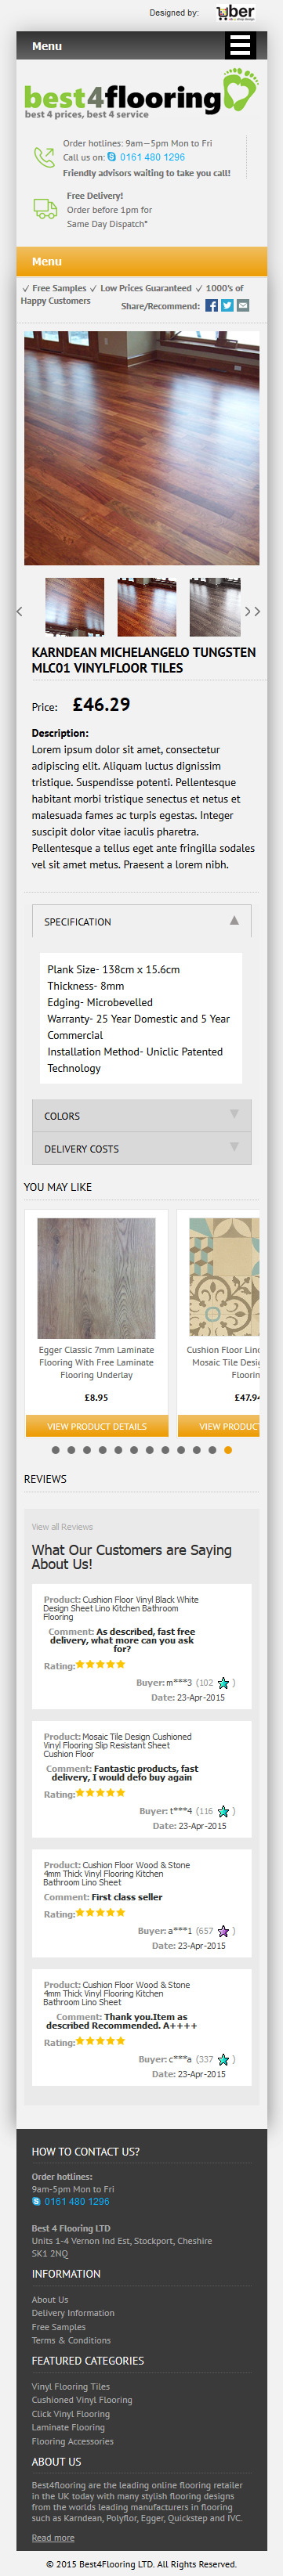 Best 4 flooring ebay item template mobile responsive